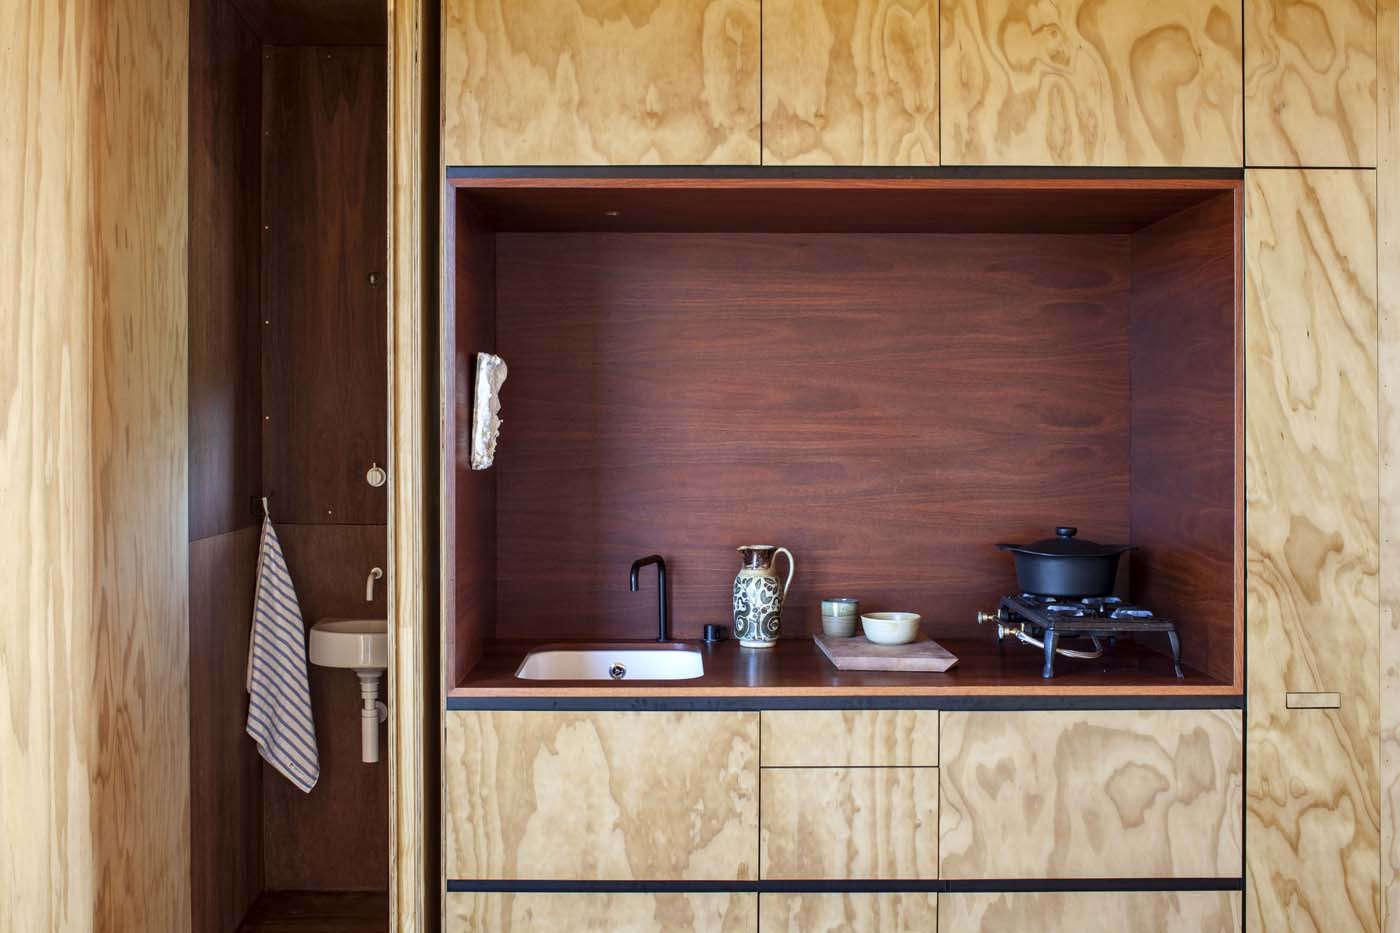 Kitchenettes in two tiny New Zealand cabins are equipped with a refrigerator and dishwasher (hidden behind panels), a small sink, and gas cooktop.